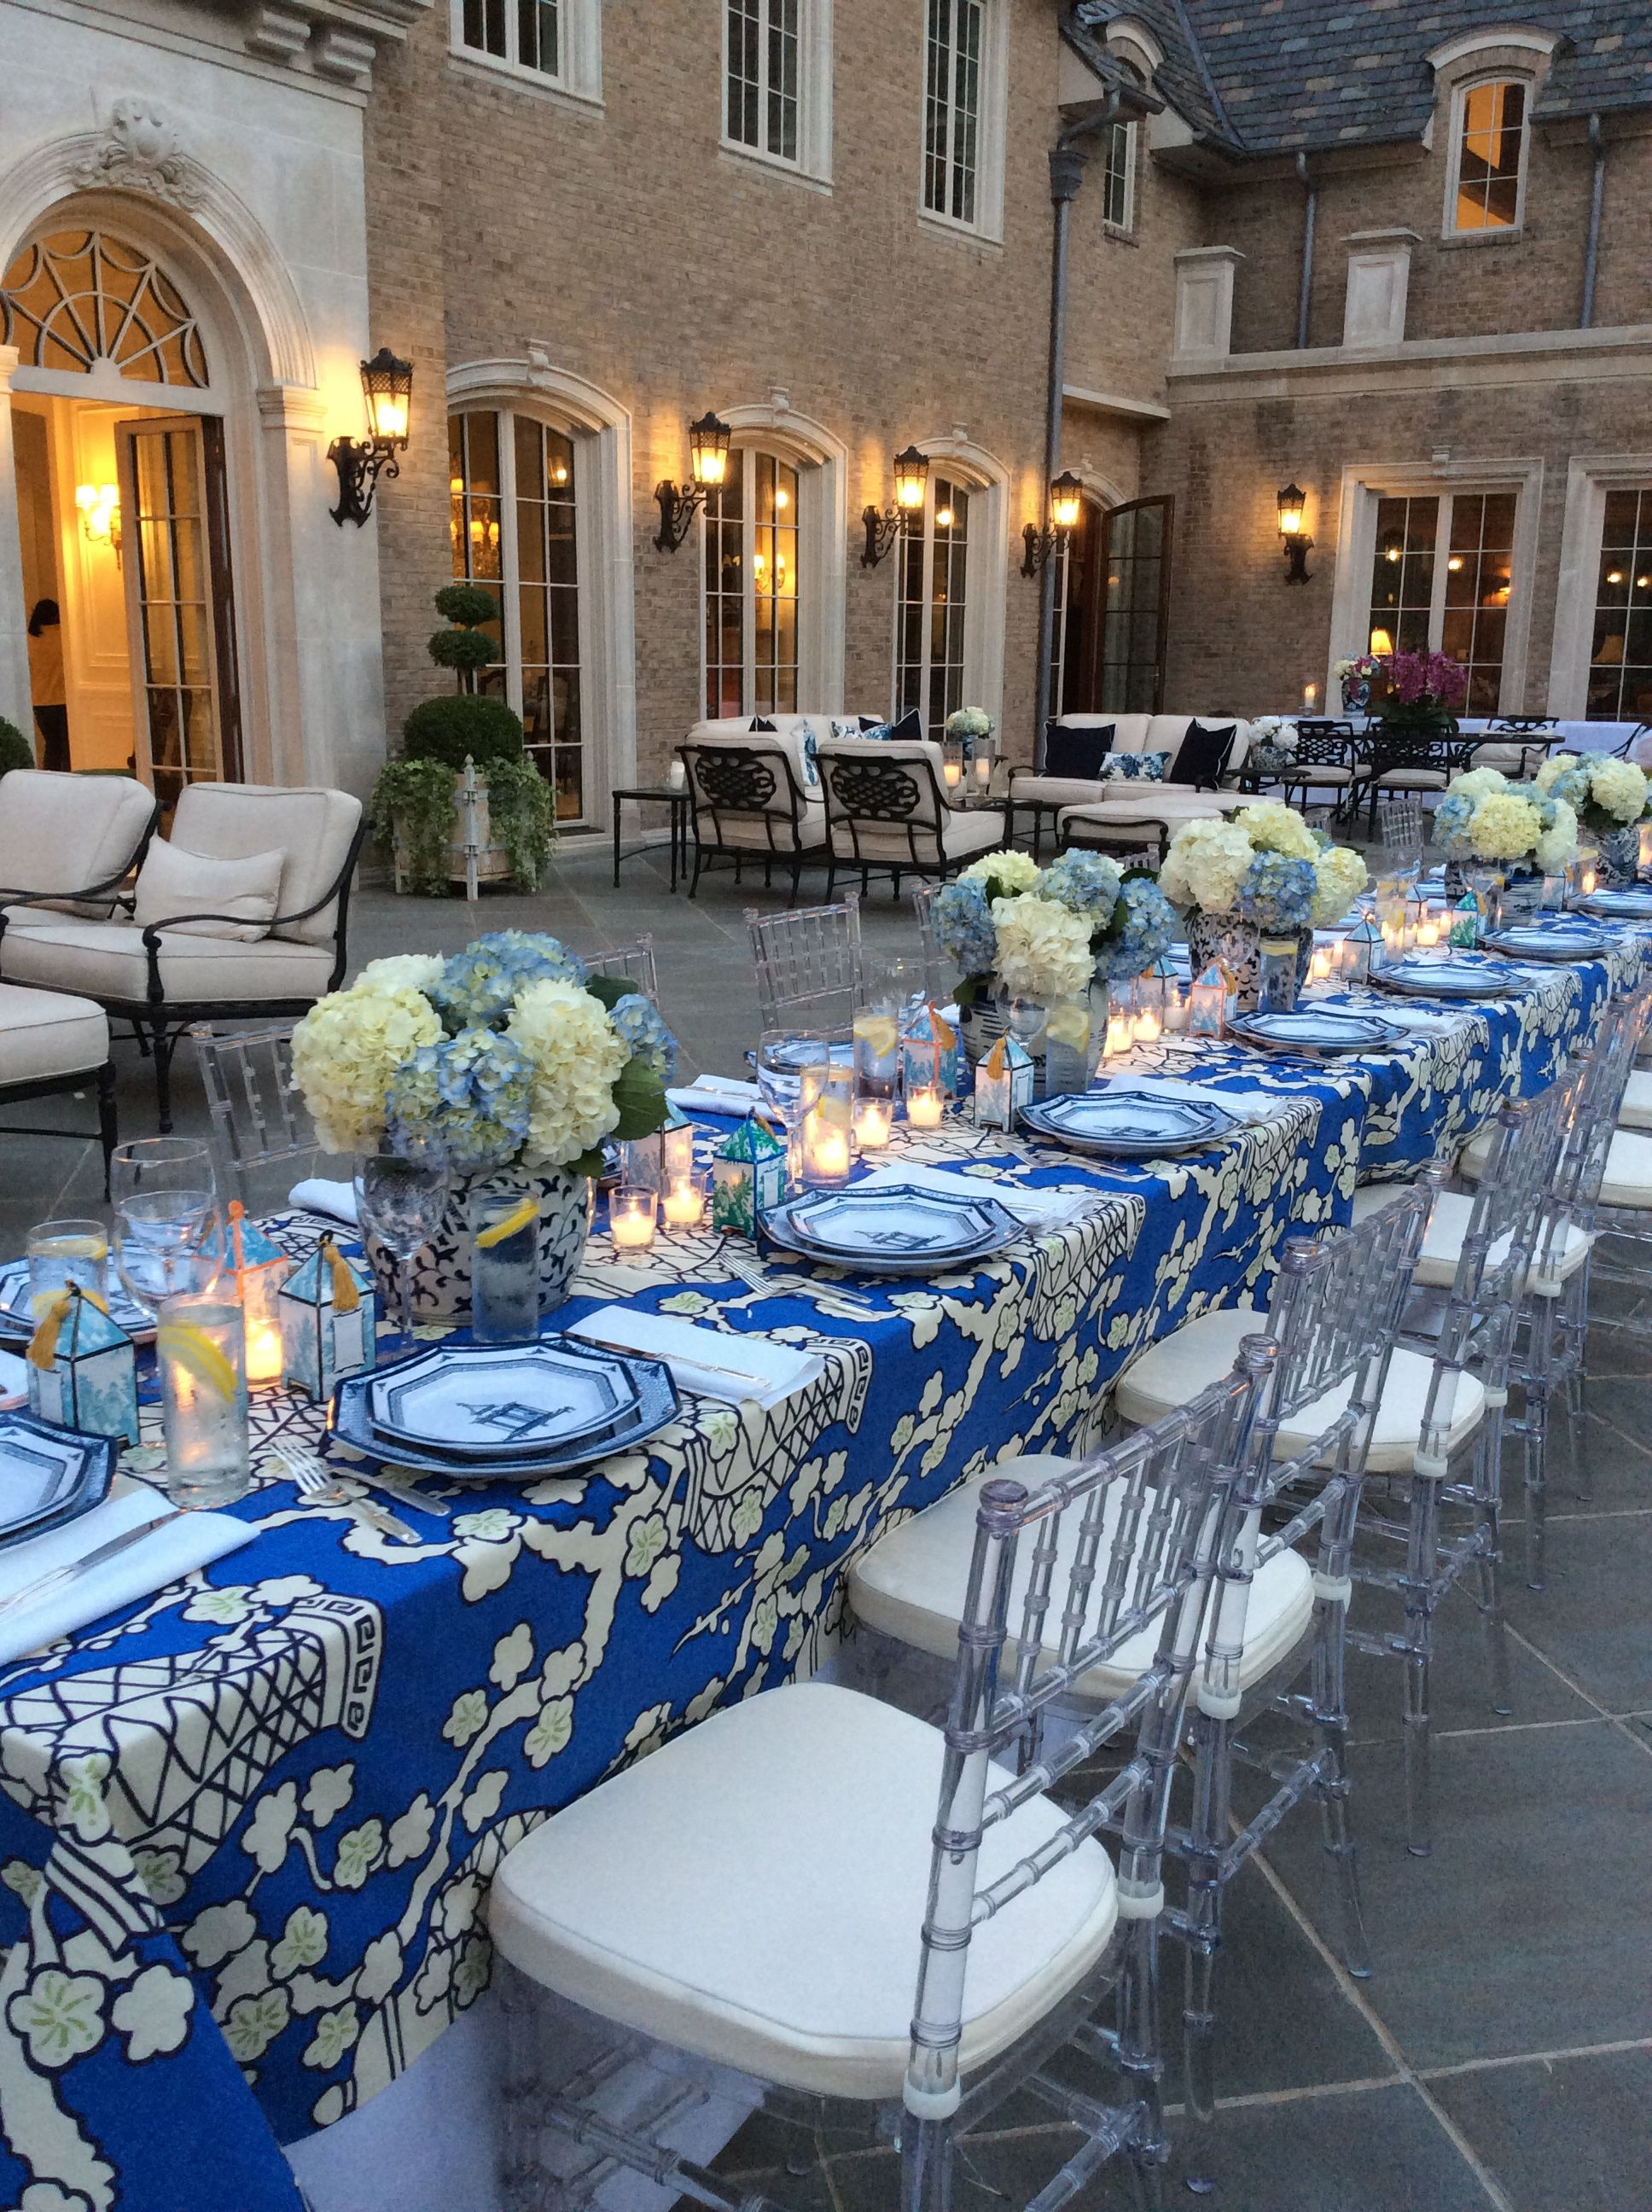 Blue Wht Dinner Party For 40 White Outdoor Table Outdoor Table Settings Blue White Decor